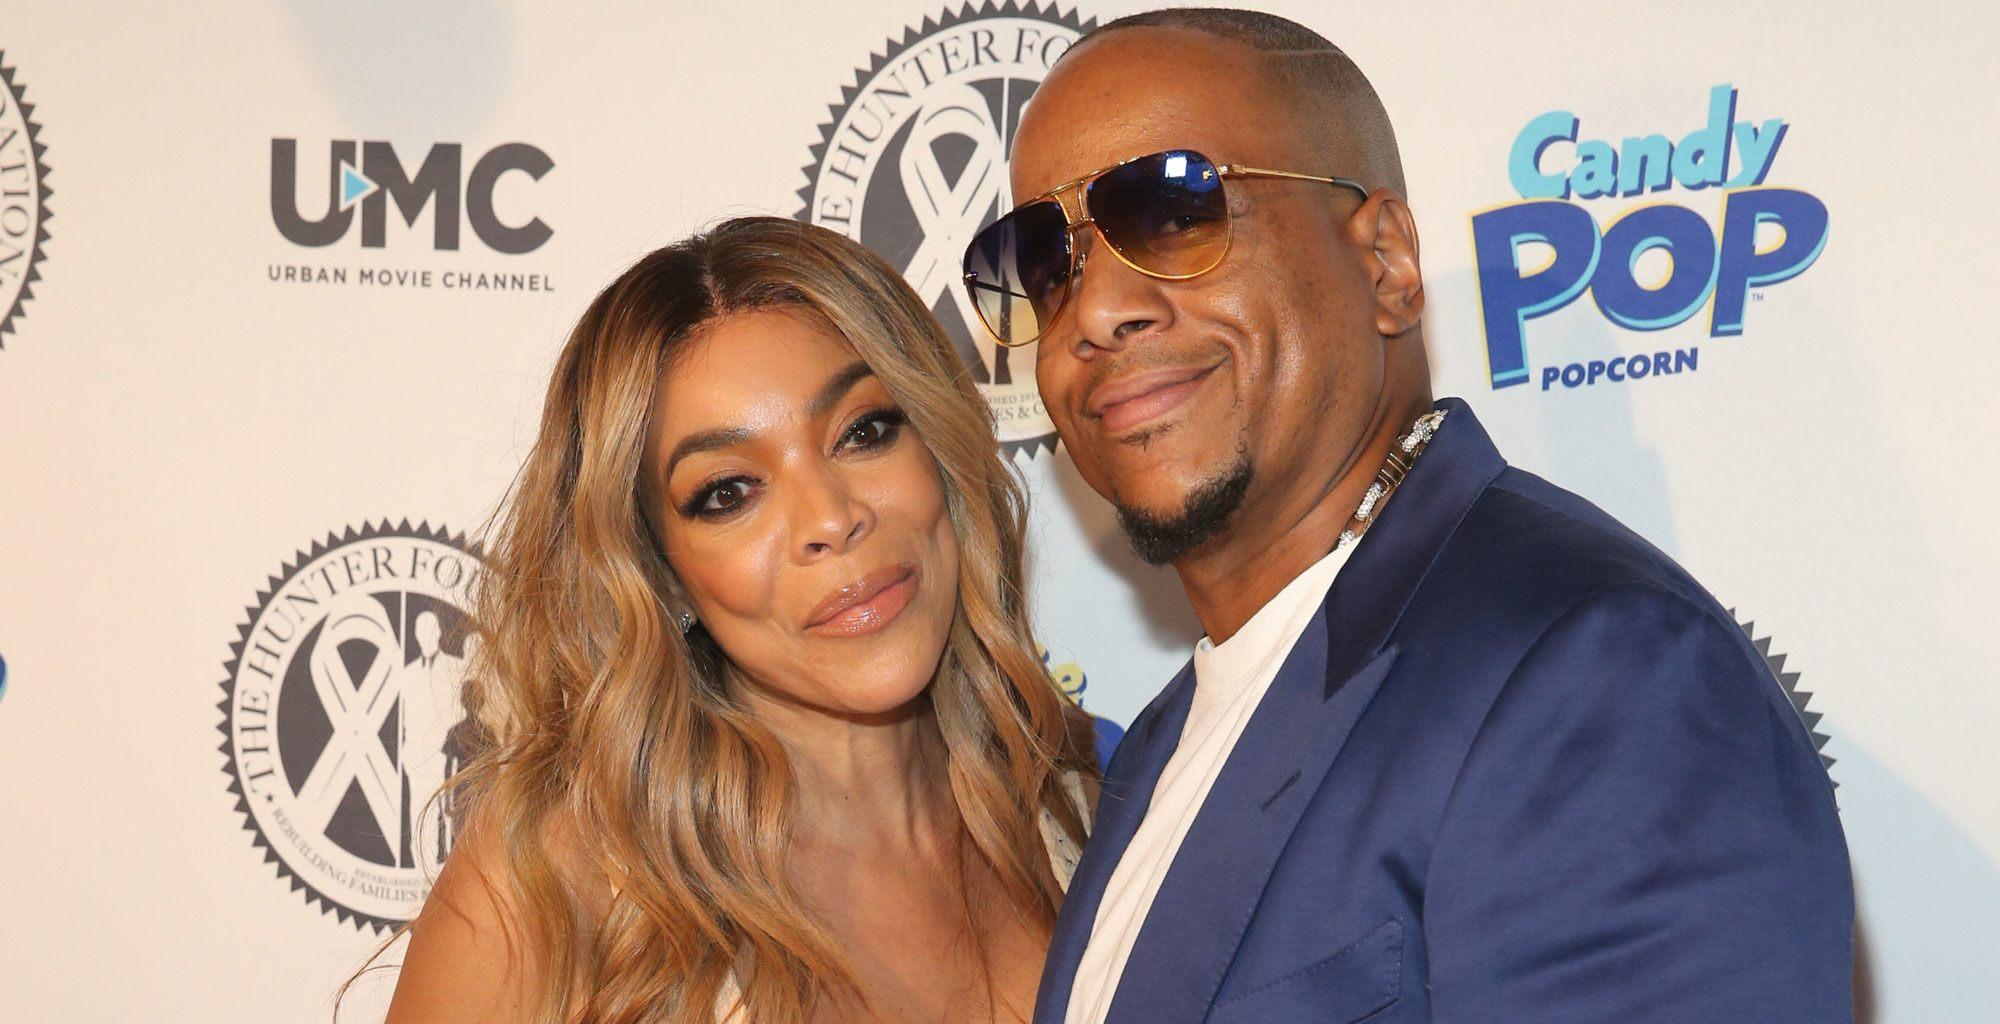 Wendy Williams' Ex-Husband Kevin Hunter Not Bothered She's Already Moved On With Much Younger Man!